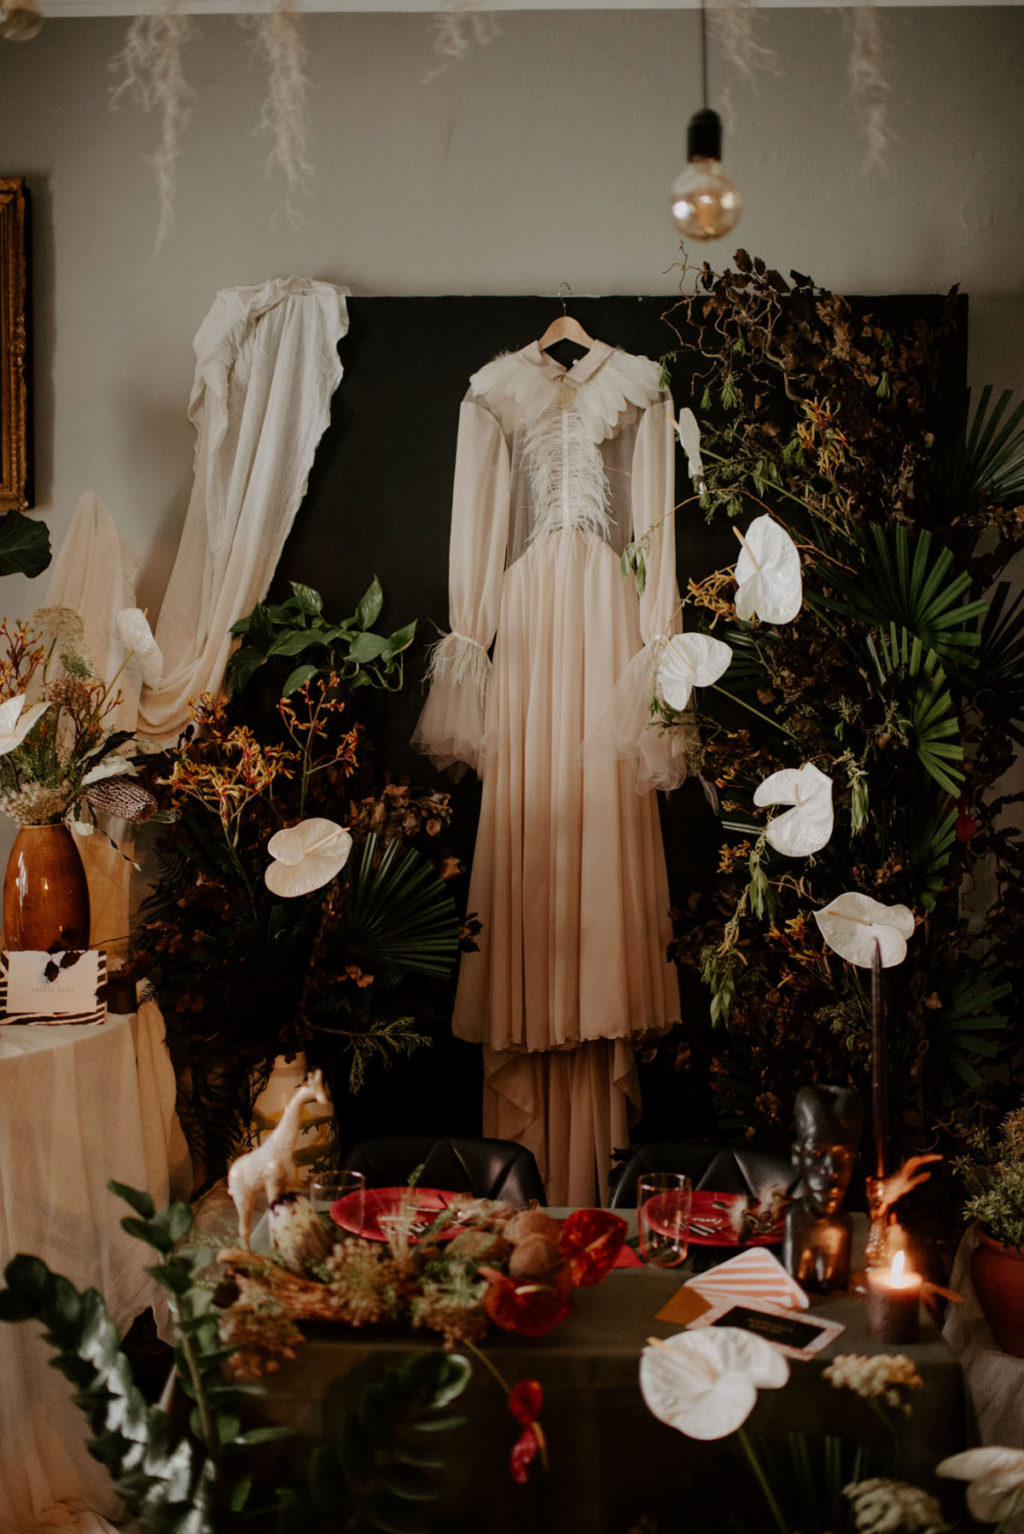 Eclectic Wedding Inspiration With Bespoke Wedding Dress and African Jungle Vibes